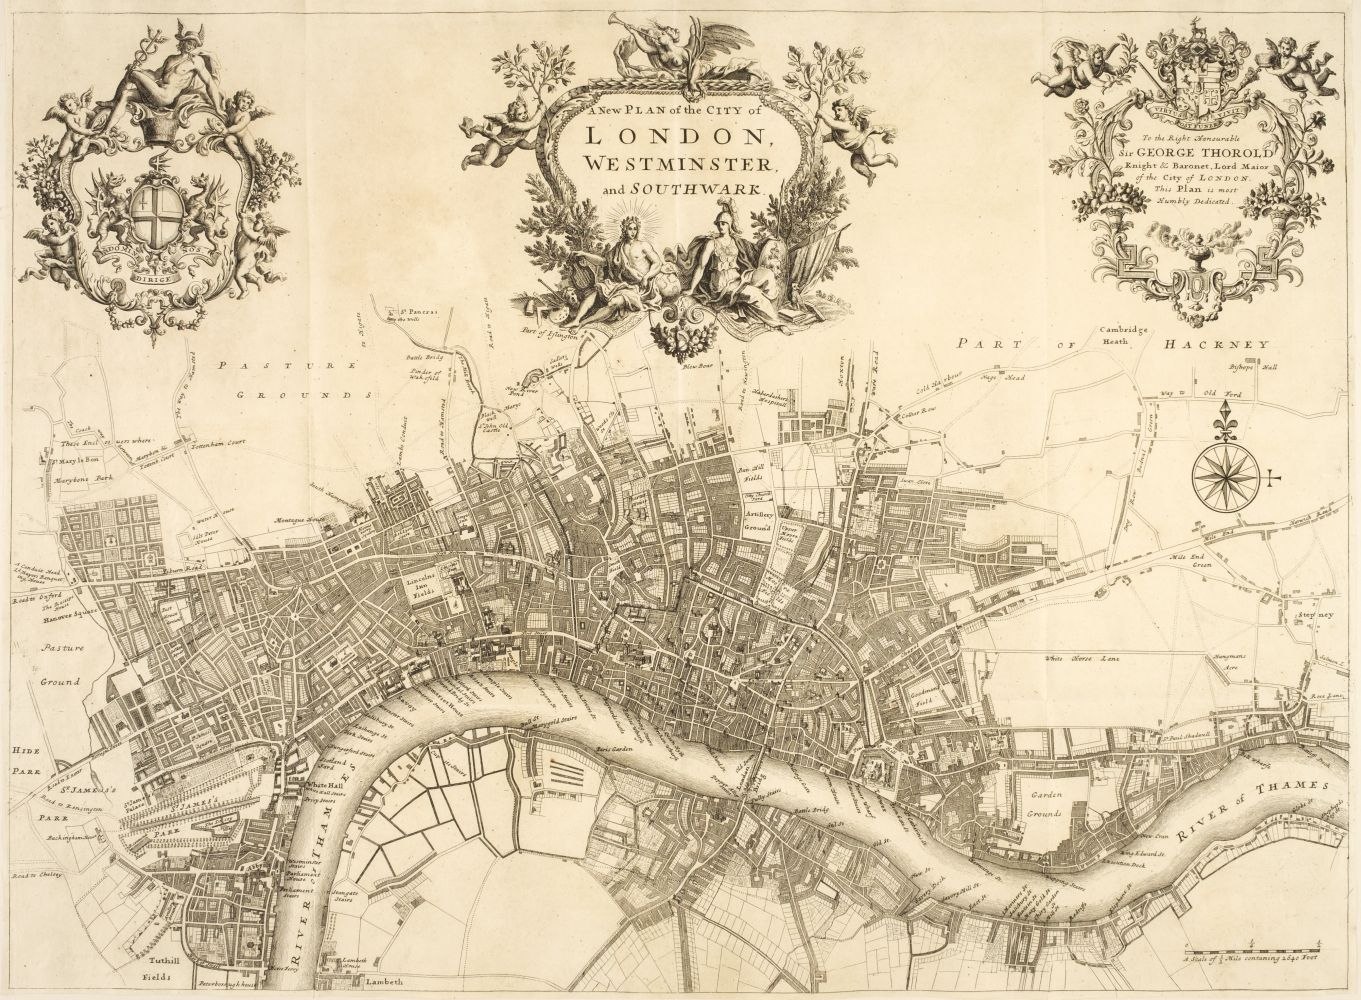 London. Strype (J.), A New Plan of the City of London, Westminster and Southwark, circa 1720